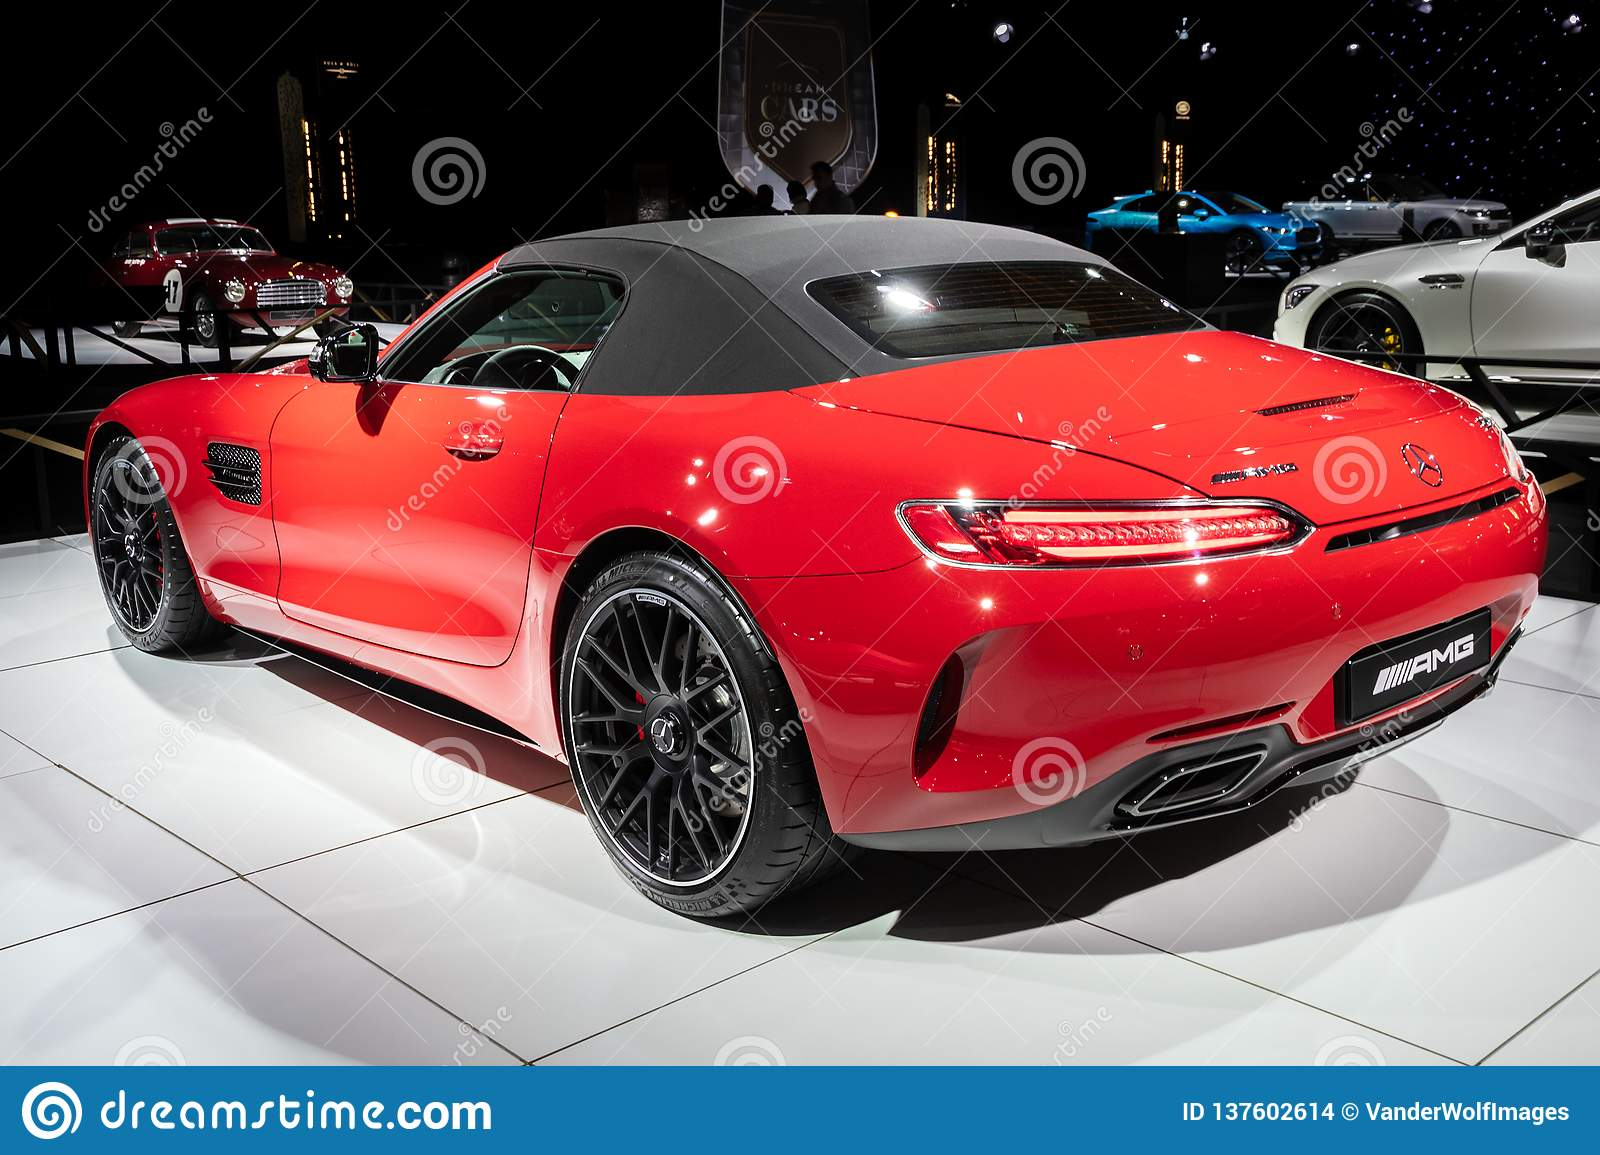 Mercedes Amg Gt C Roadster Sports Car Editorial Stock Image Image Of Autoshow Motor 137602614